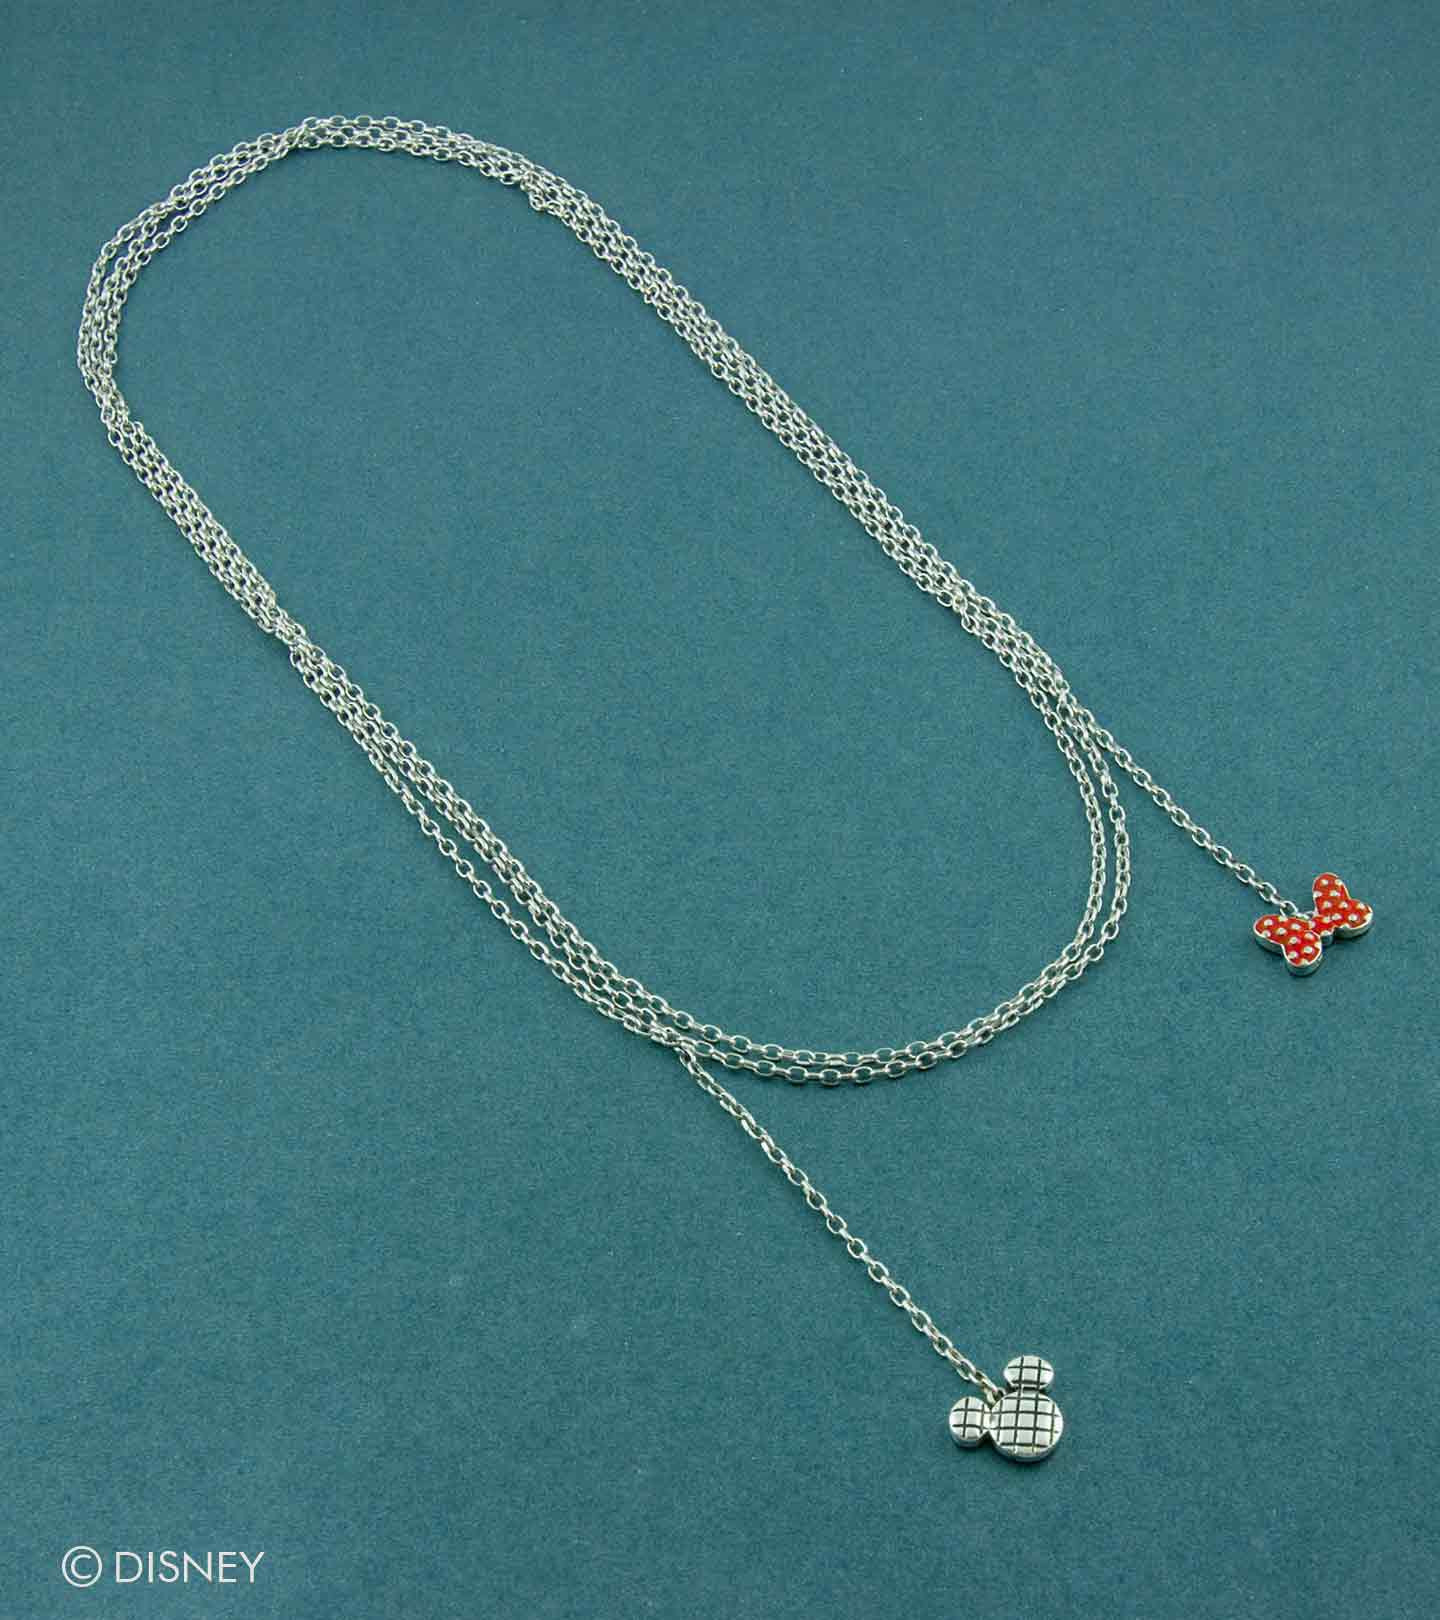 Mickey Loves Minnie Lariat Necklace Within Best And Newest Disney Classic Mickey Pendant Necklaces (Gallery 14 of 25)